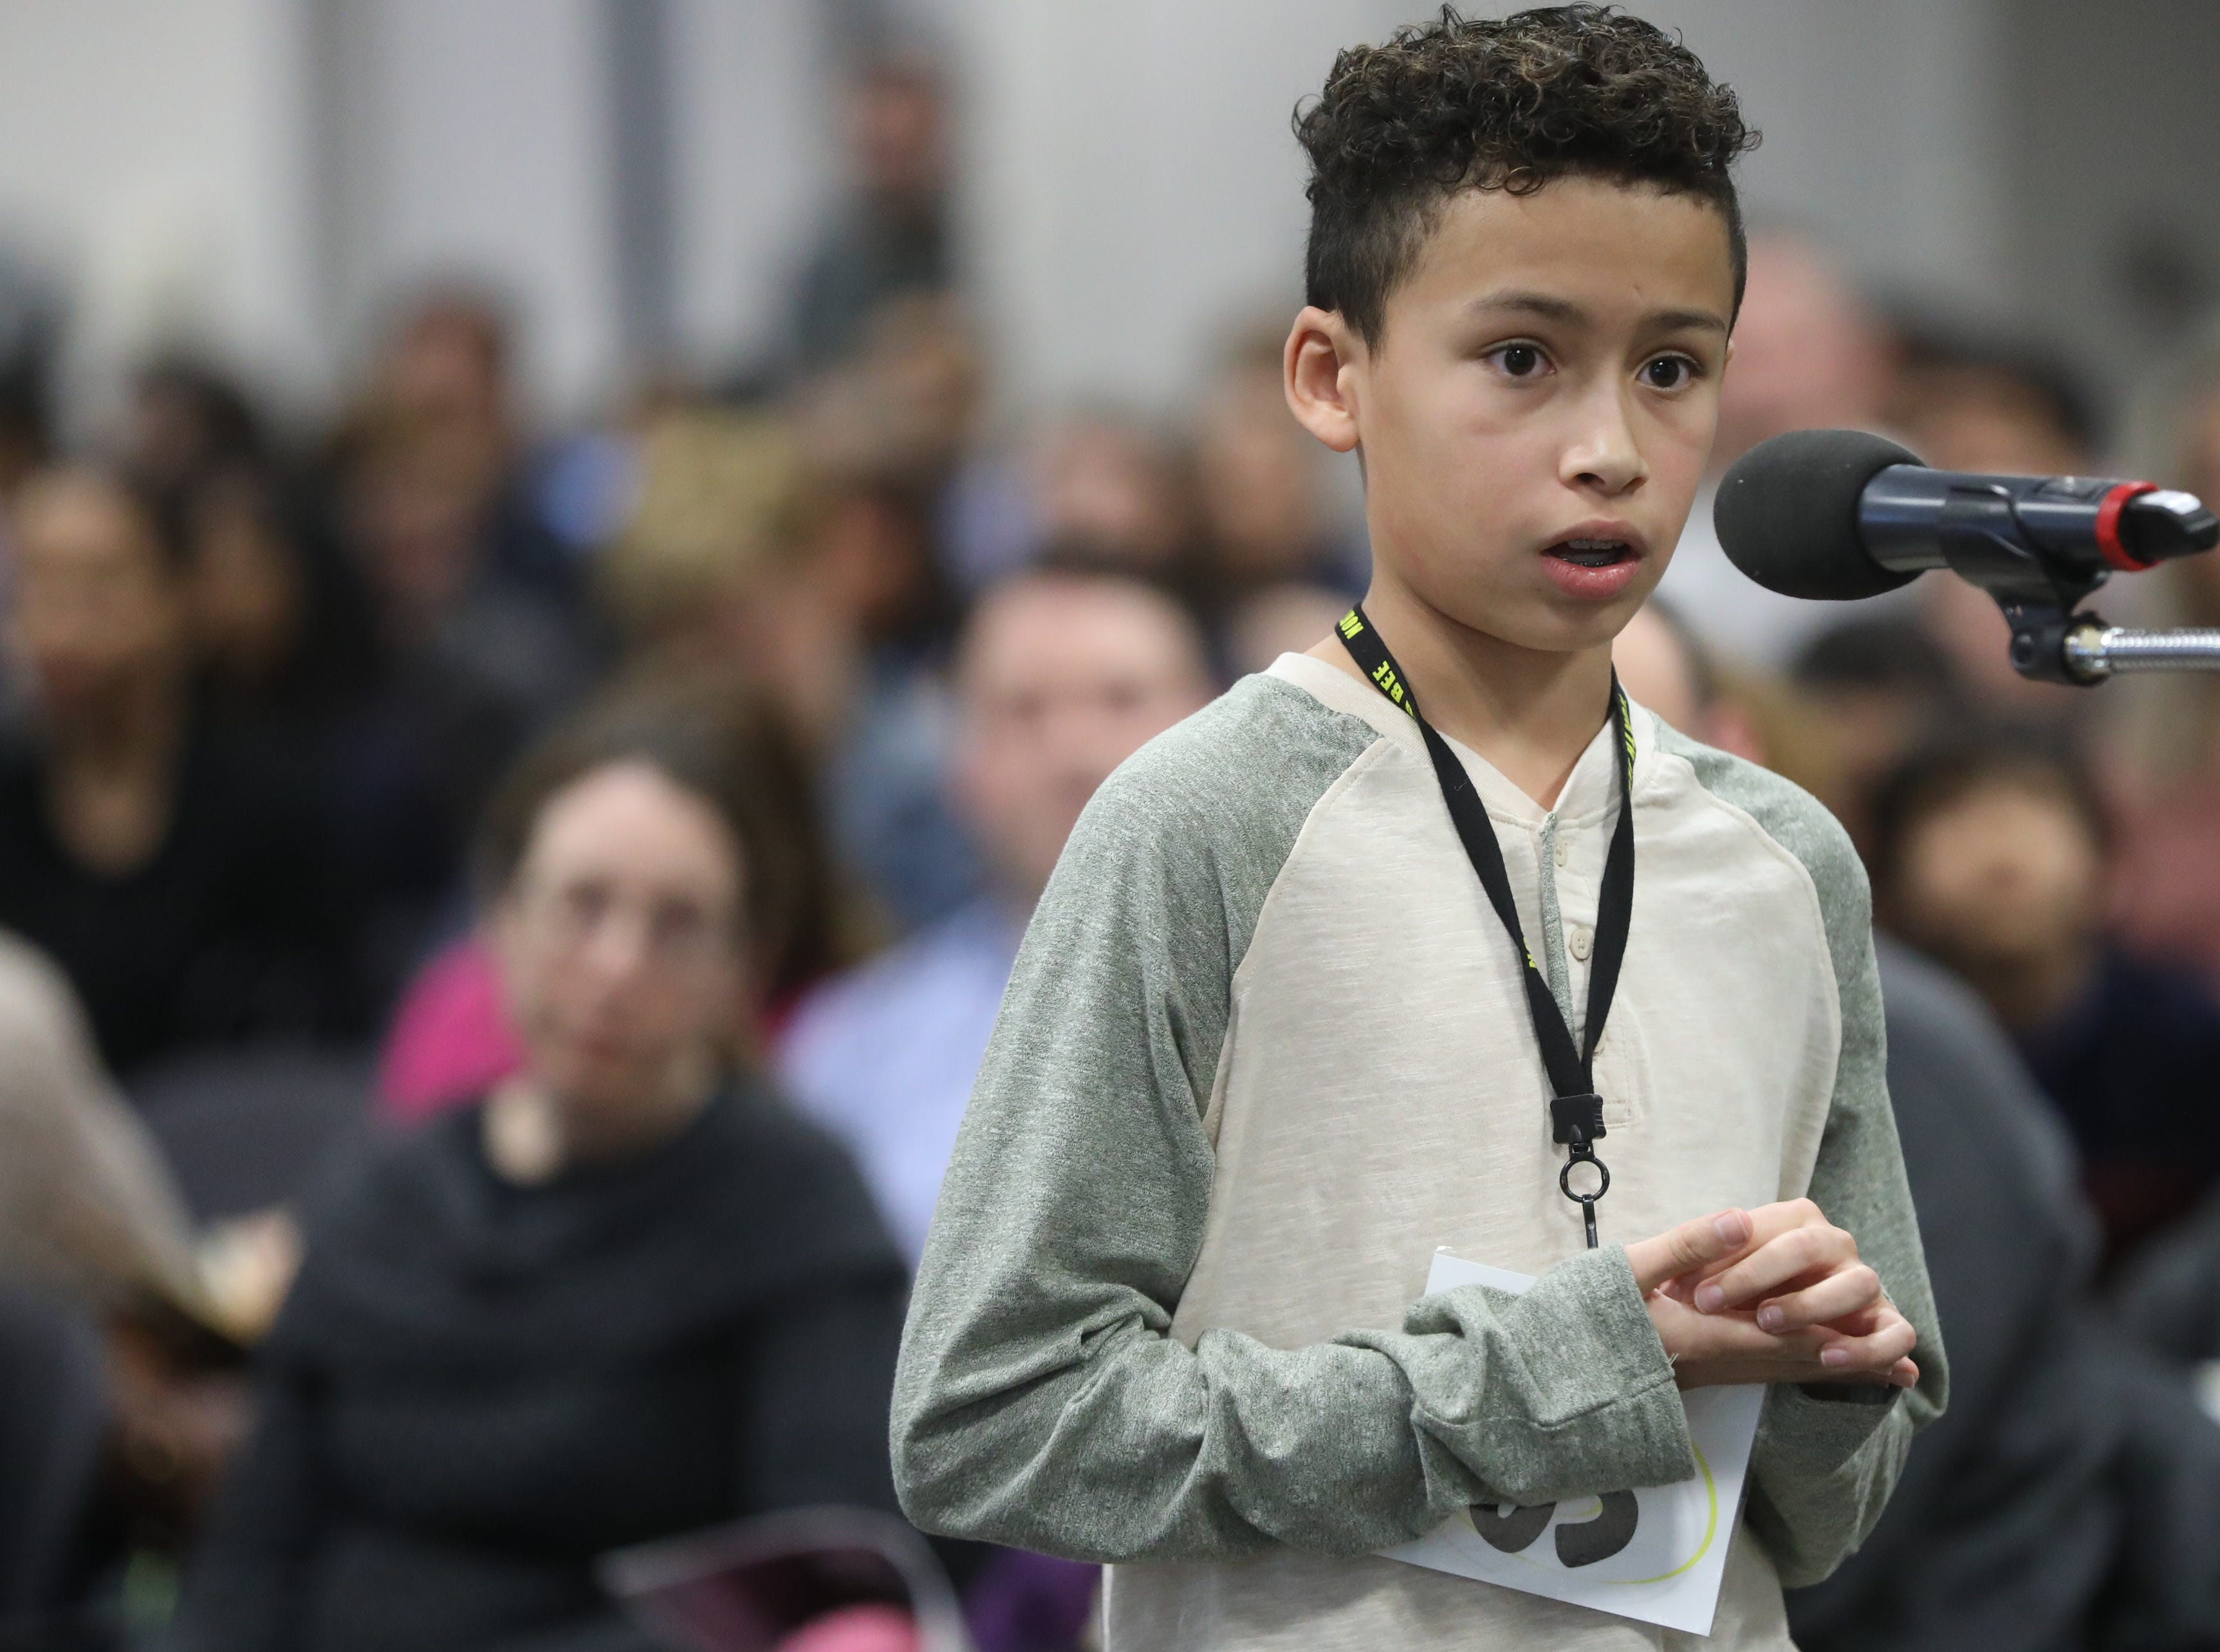 Jordan Cano-Alzate, of Moonachie, competes in the first round of the 2019 North Jersey Spelling Bee, in Paramus. Thursday, March 14, 2019